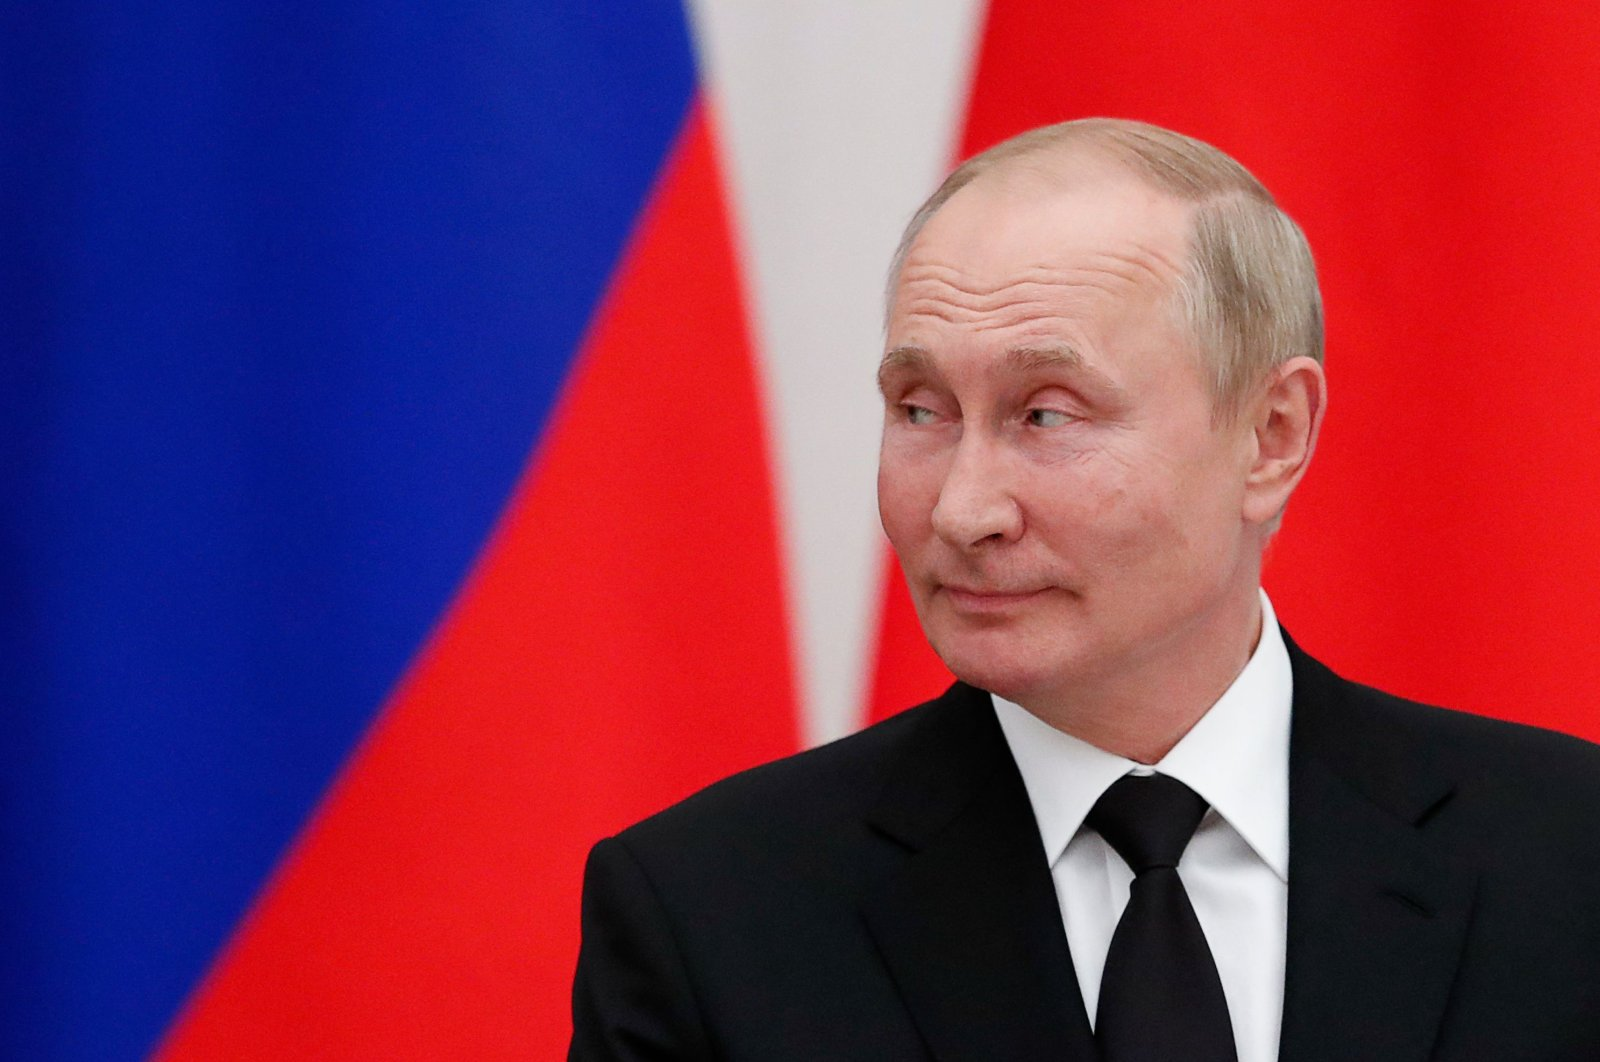 Russian President Vladimir Putin attends a press conference with the Belarusian president (not pictured) following their talks at the Kremlin in Moscow, Russia, Sept. 9, 2021. (AFP Photo)